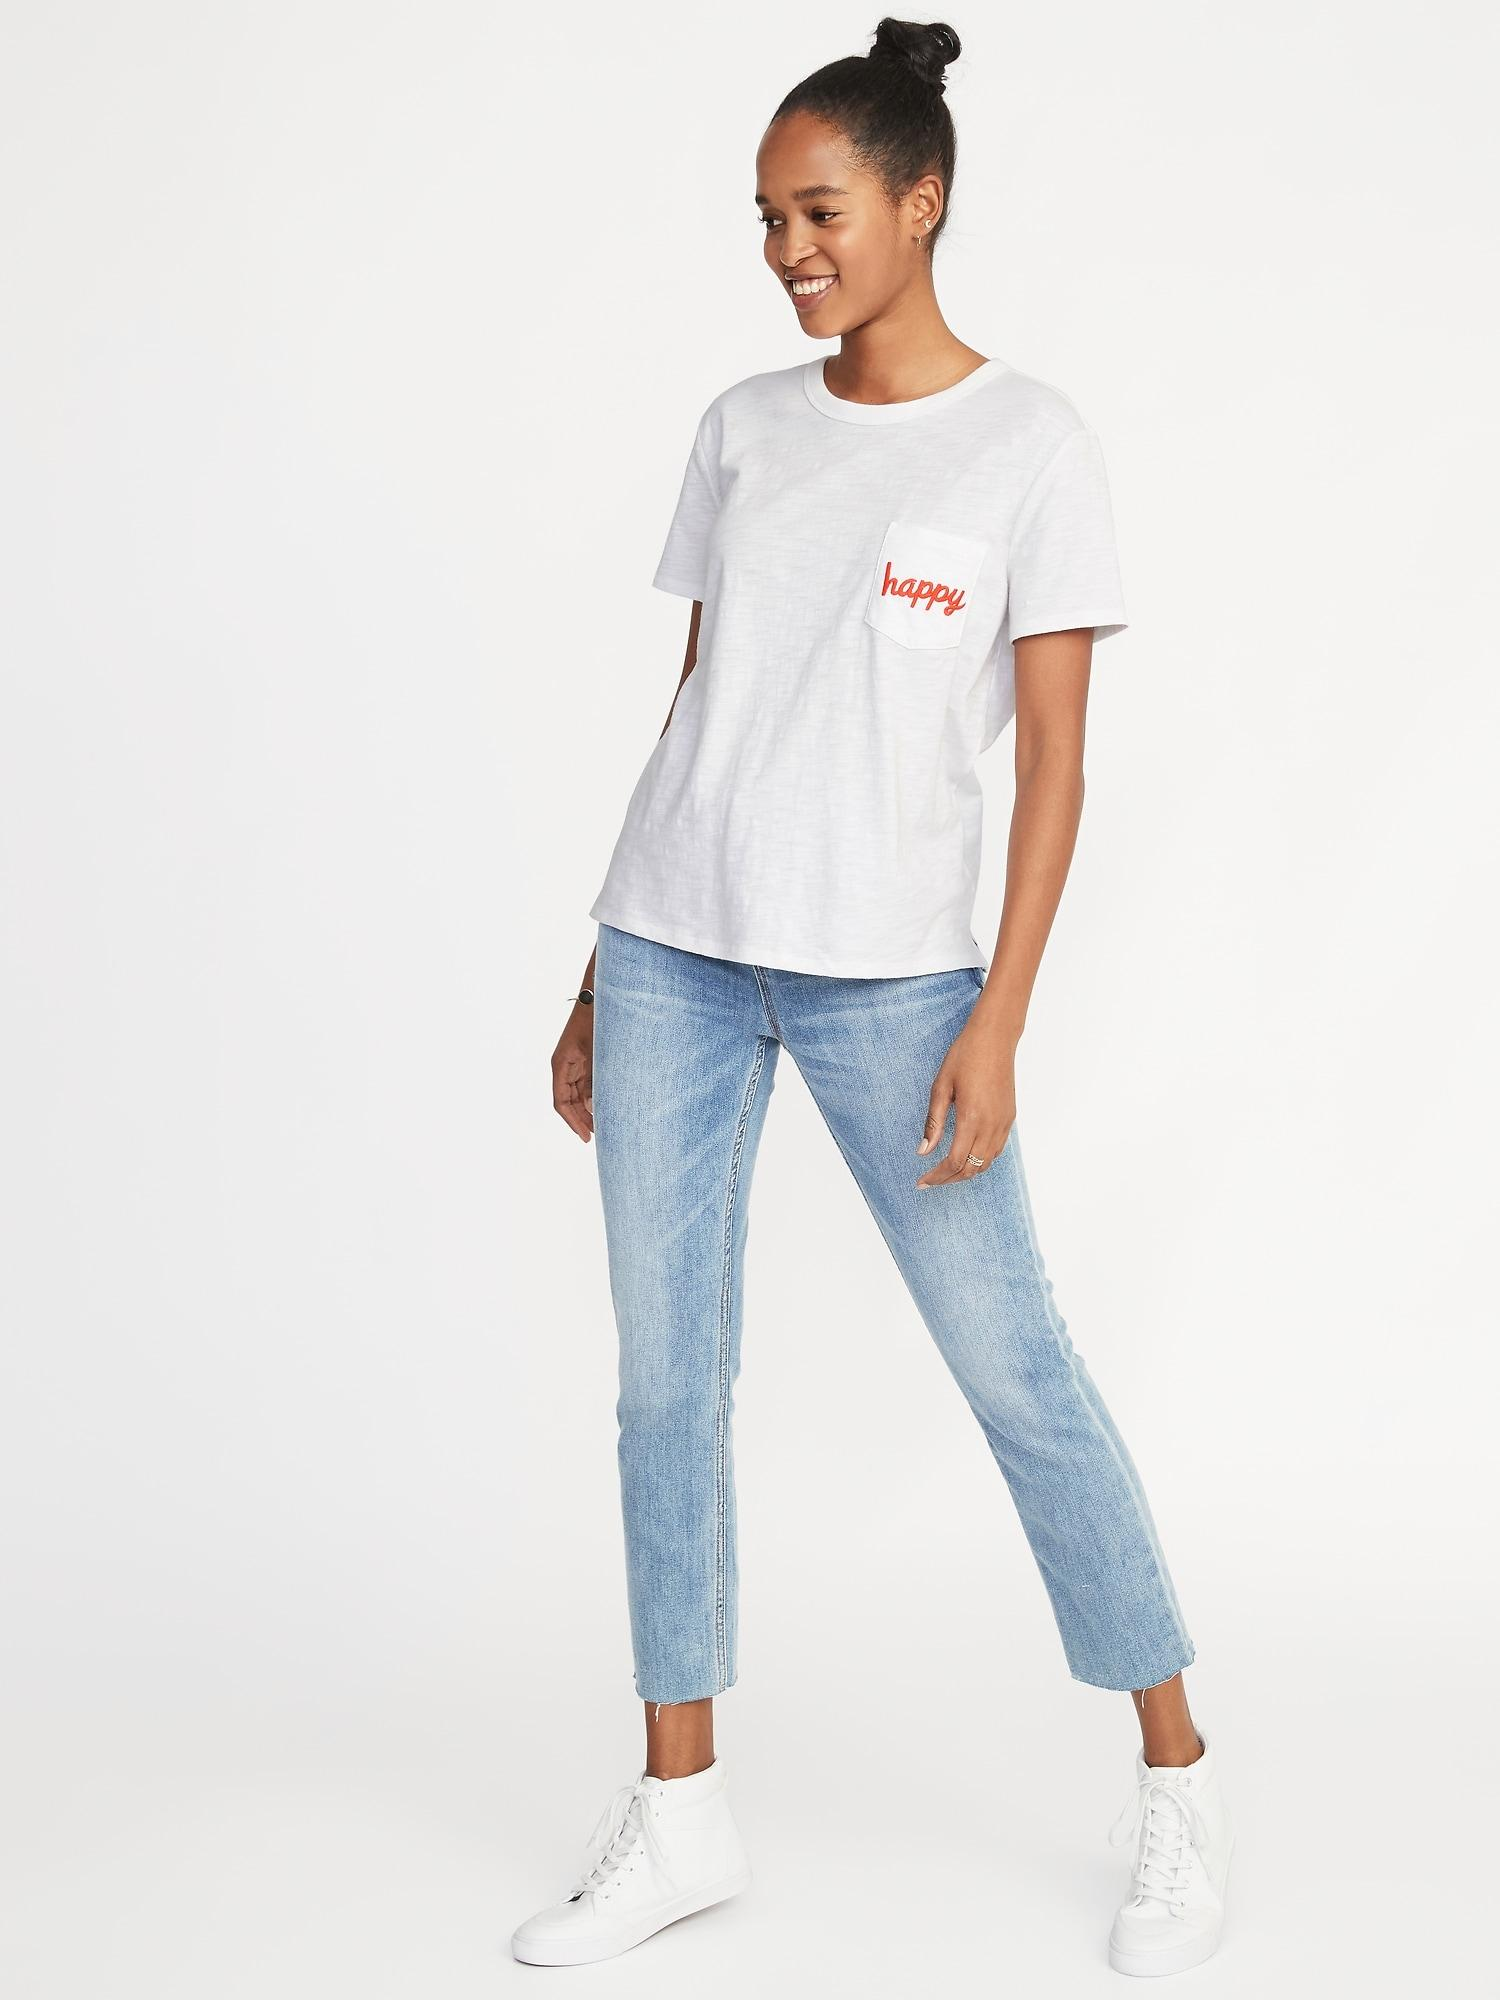 a14d7f393 Lyst - Old Navy Happy-graphic Boyfriend Tee in White